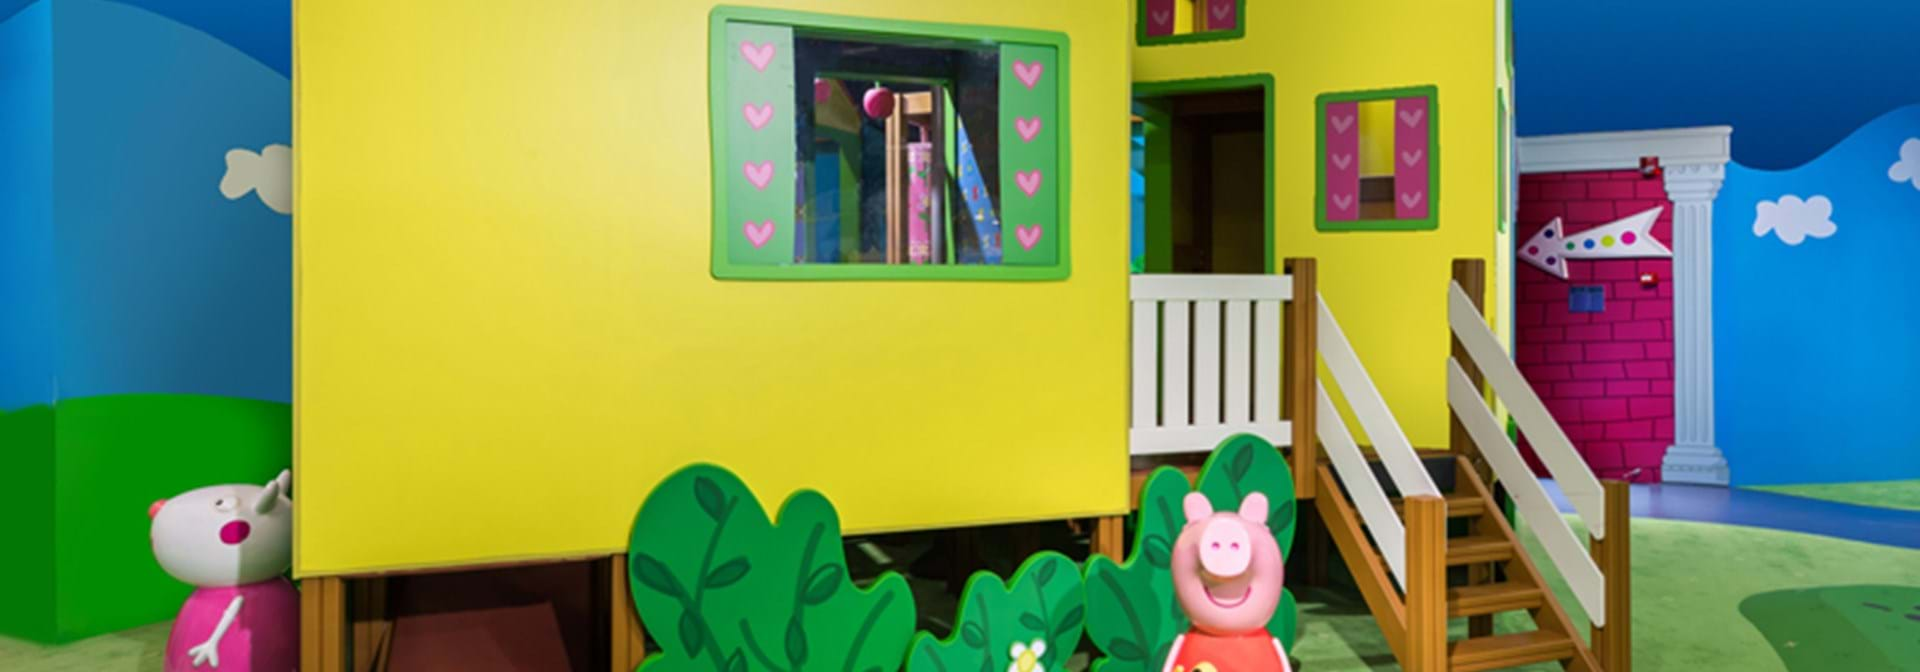 Peppas Pig Treehouse Hero